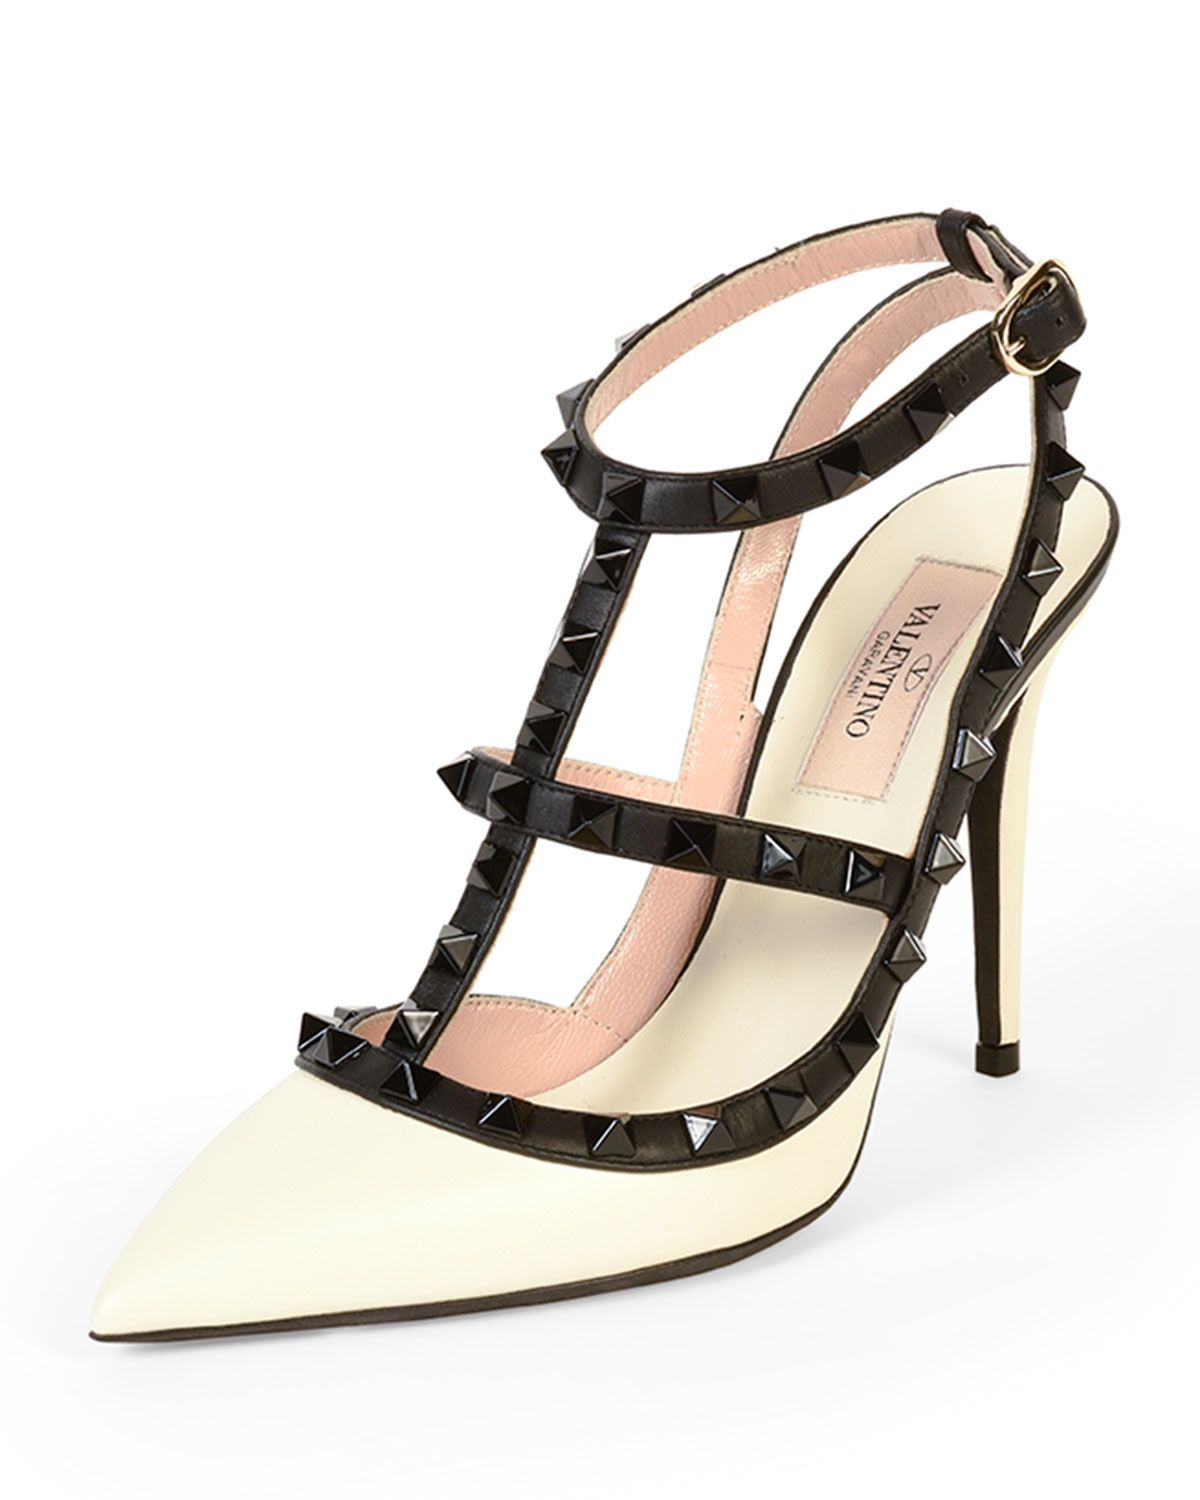 1b4e01d691 Valentino Garavani Rockstud Colorblock Leather Sandal, Ivory/Black ...